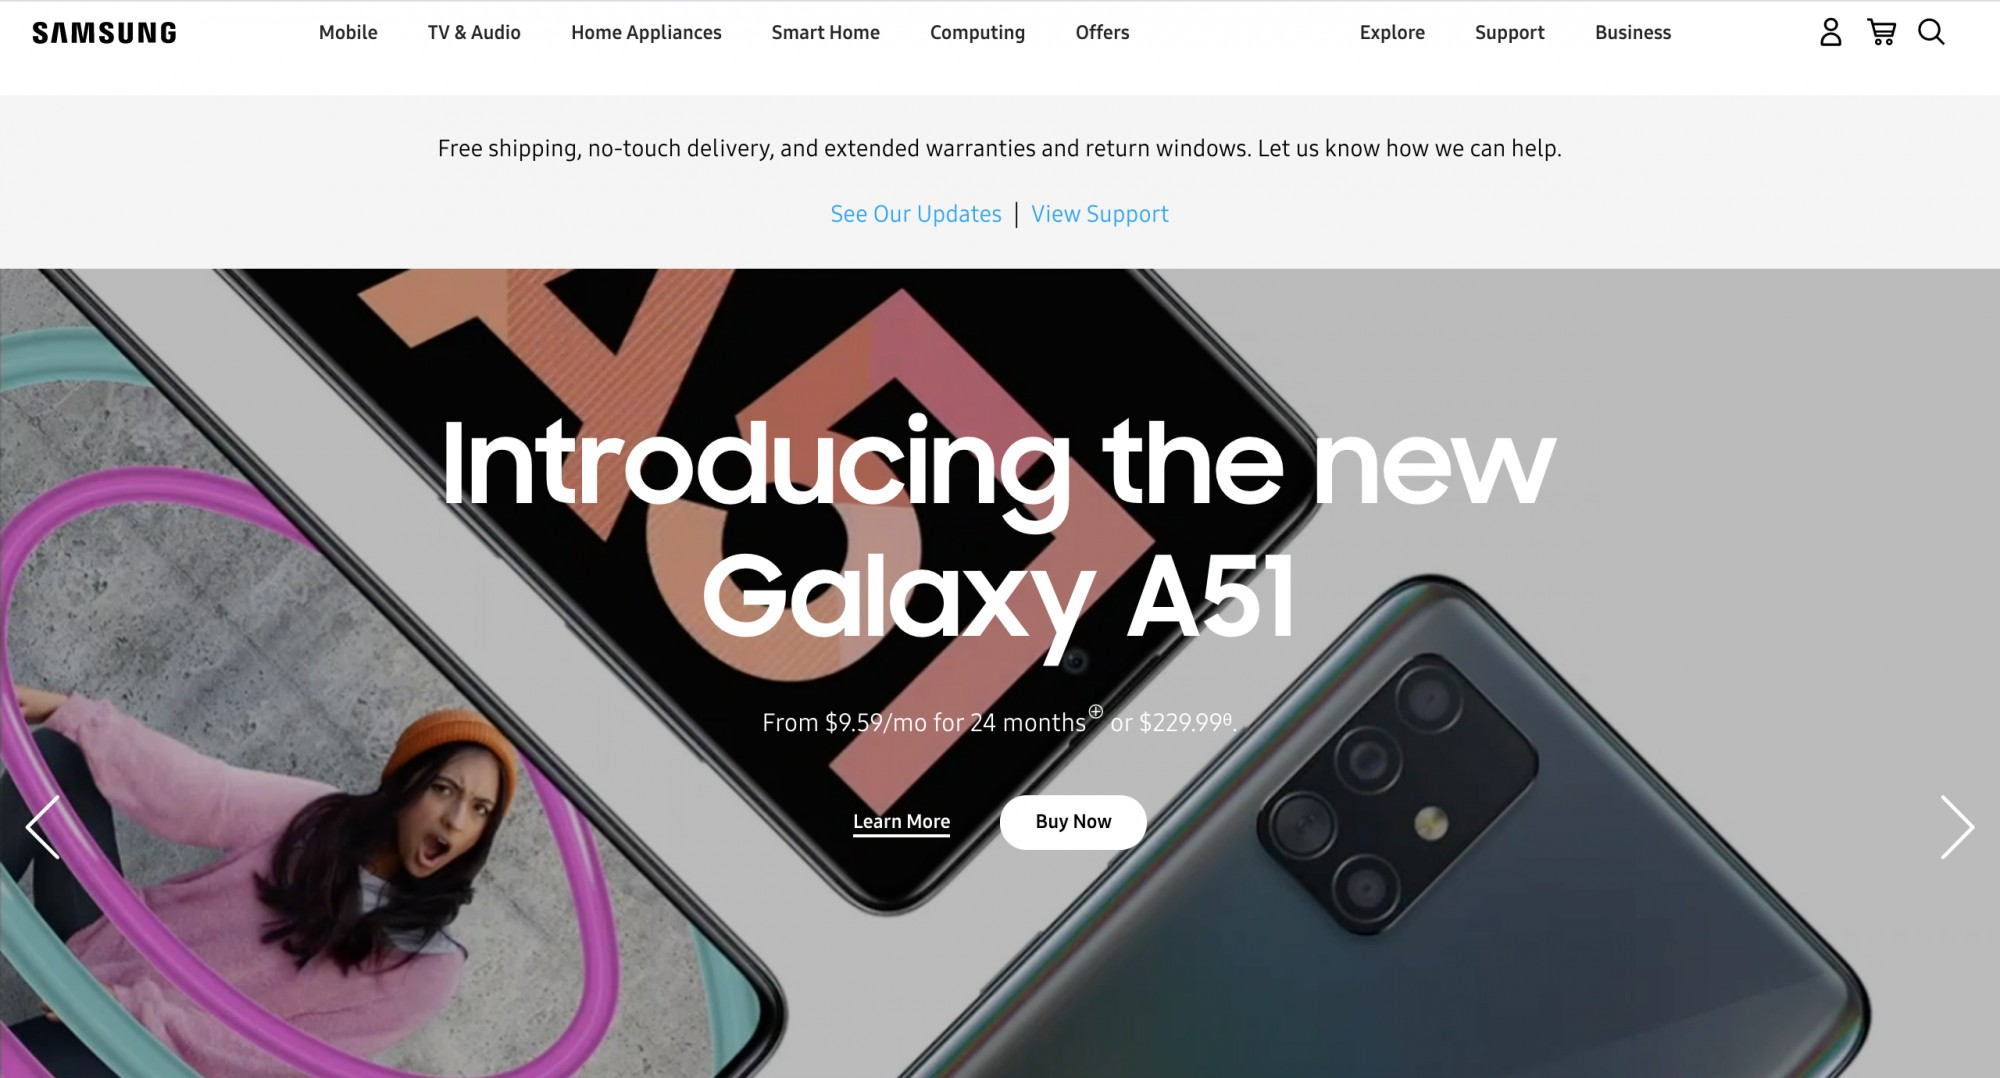 Samsung landing page with Galaxy A51 and main message with buttons